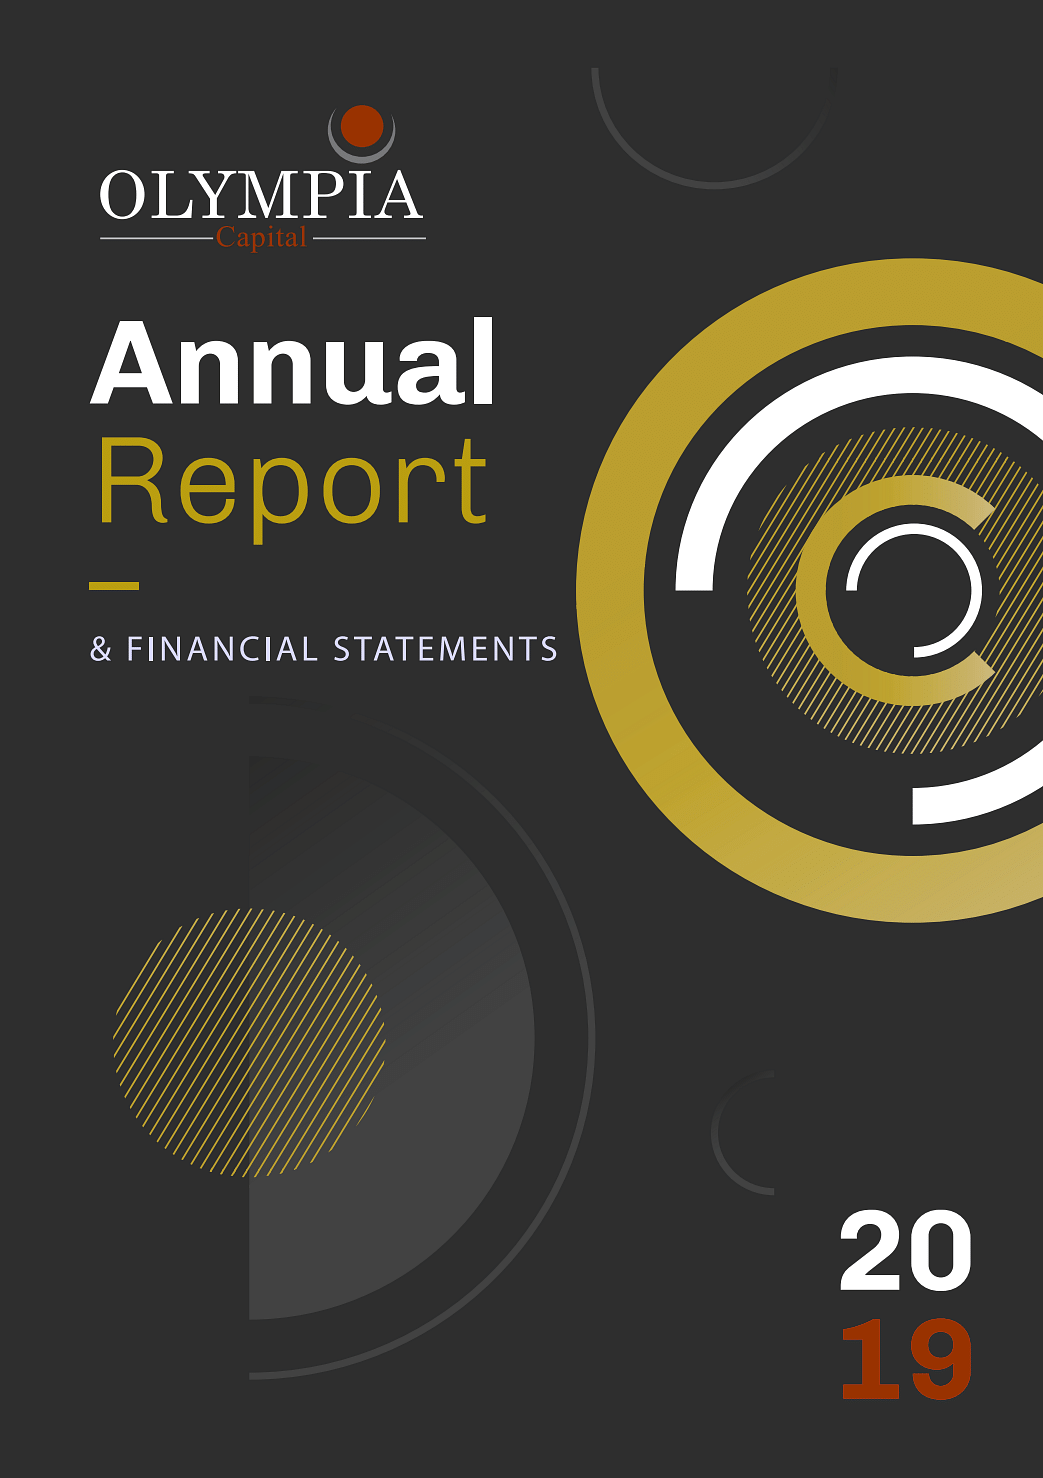 Olympia Capital Annual Report 2019 cover